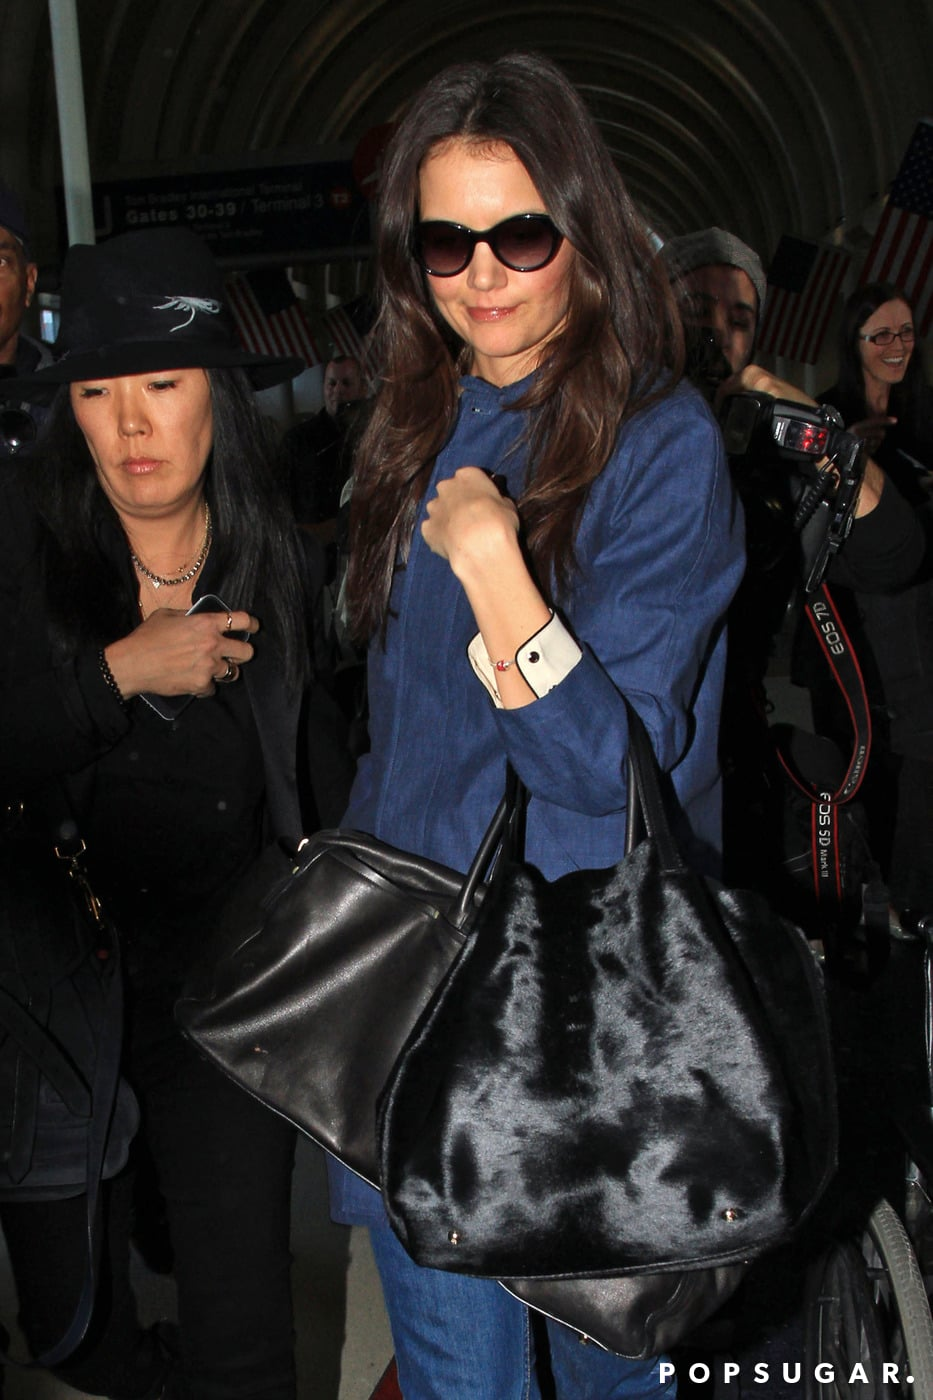 Katie Holmes was accompanied by her stylist and friend Jeanne Yang on Wednesday at LAX.